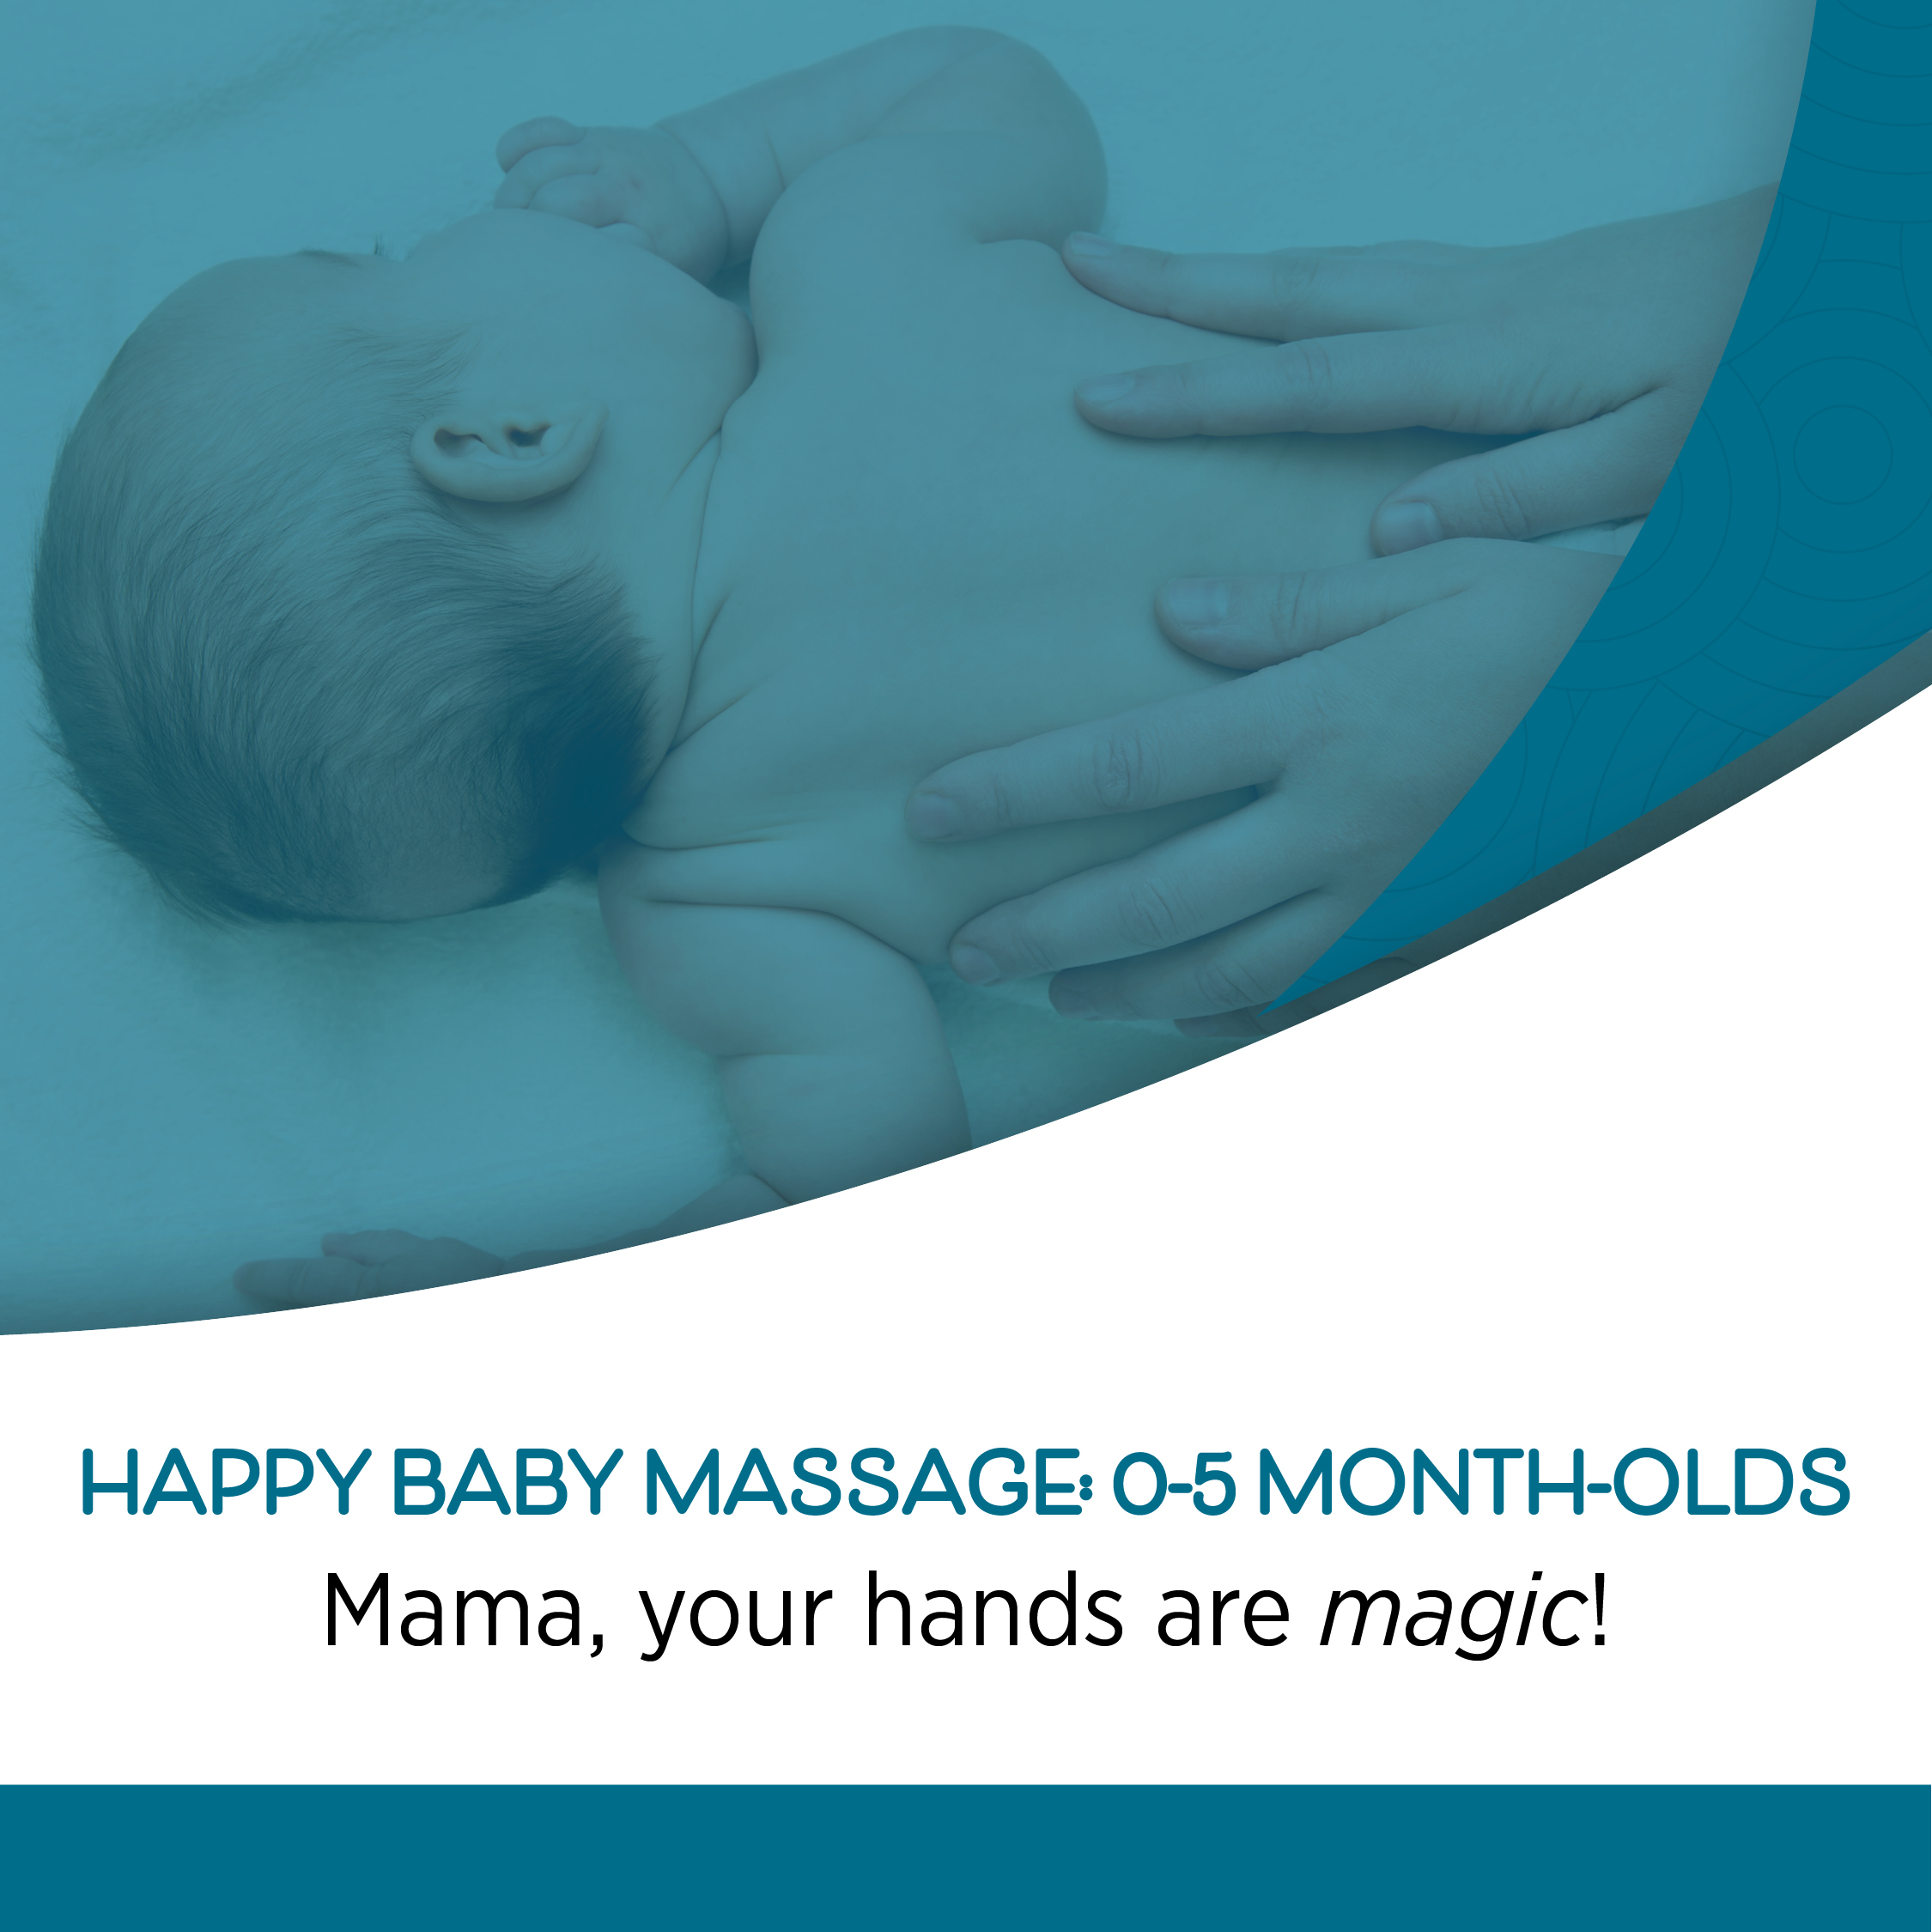 Haumea_2019_HappyBabyMassage_0-5month_Web.jpg